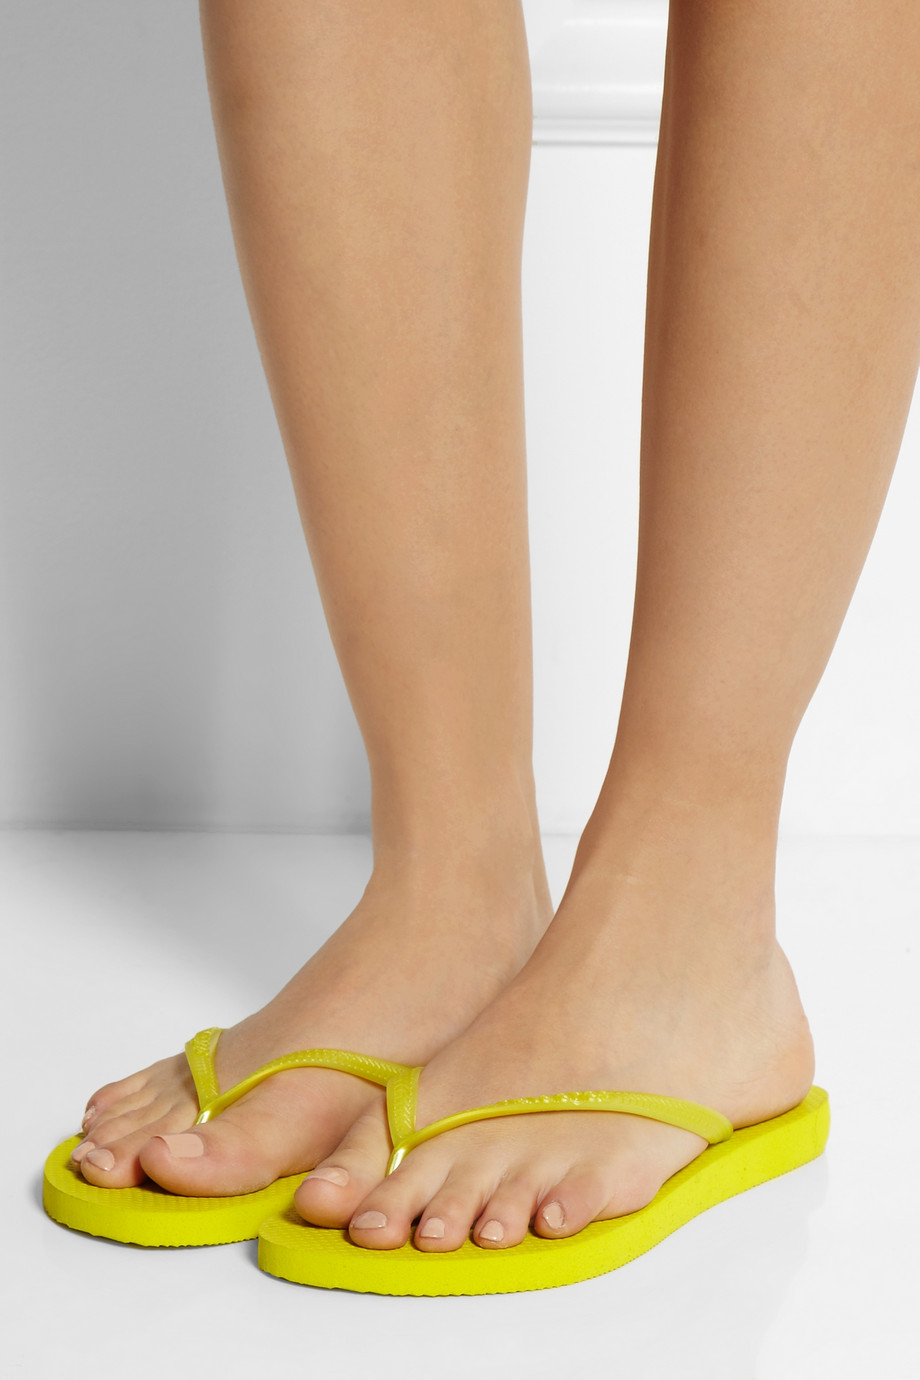 Flip Flops With Support For Feet